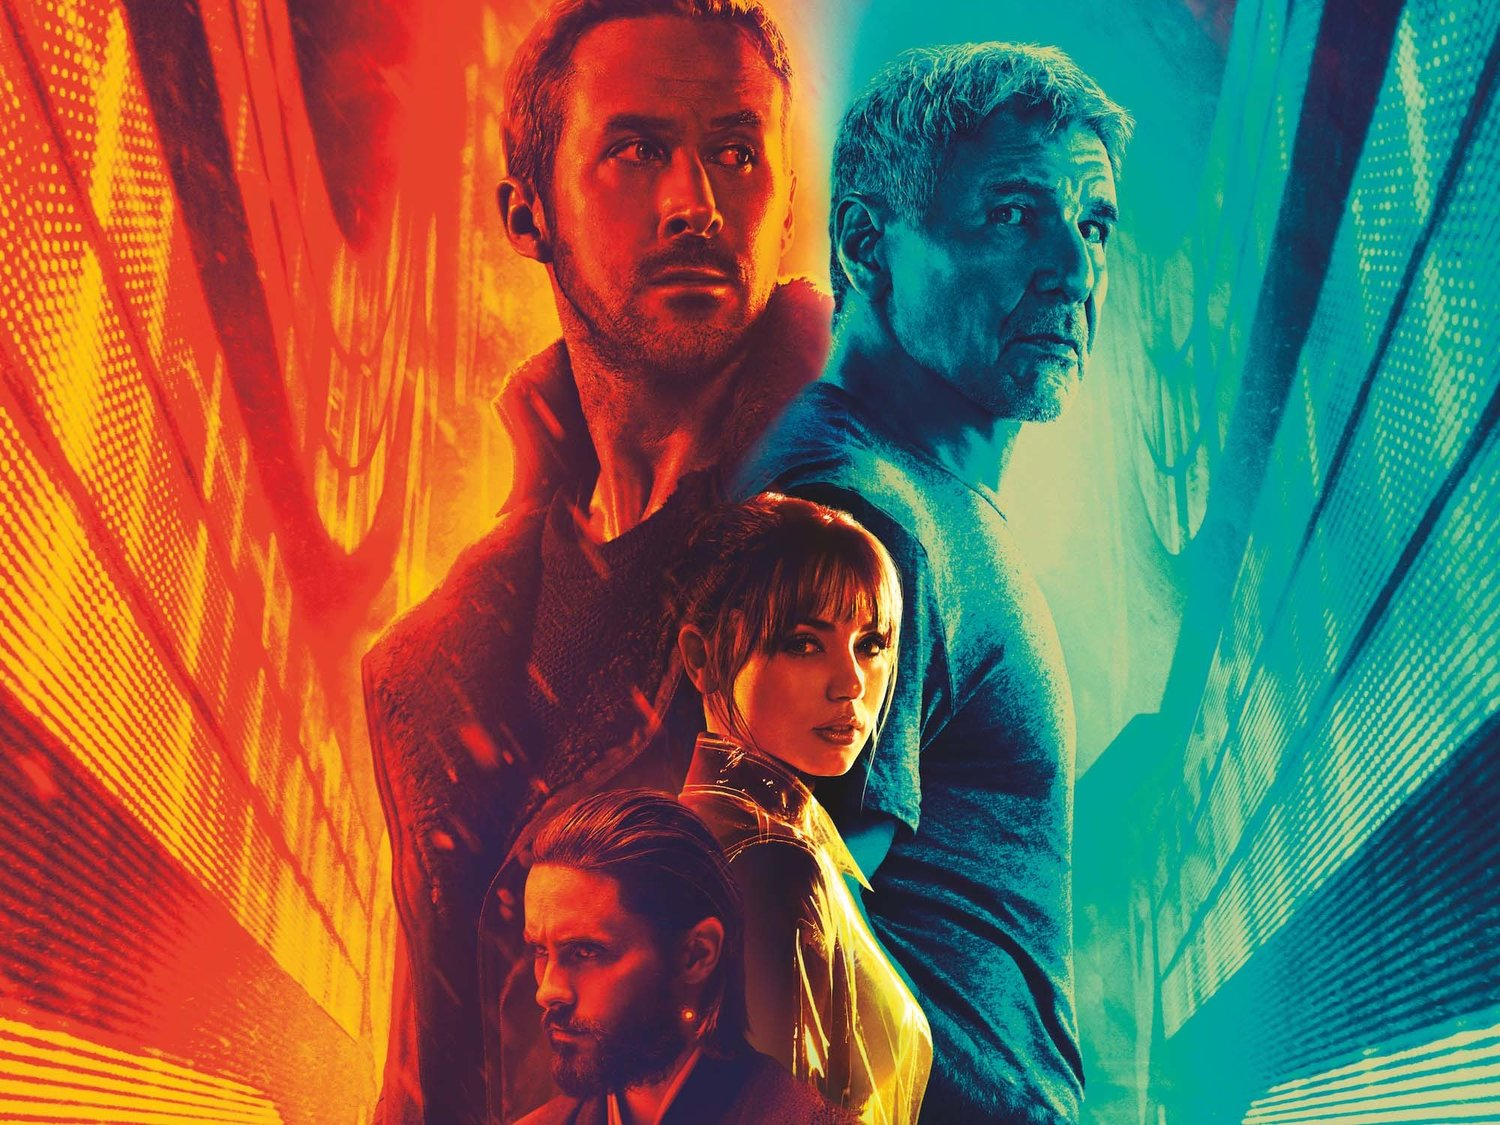 Blade-Runner-2049-Film-Review.jpg